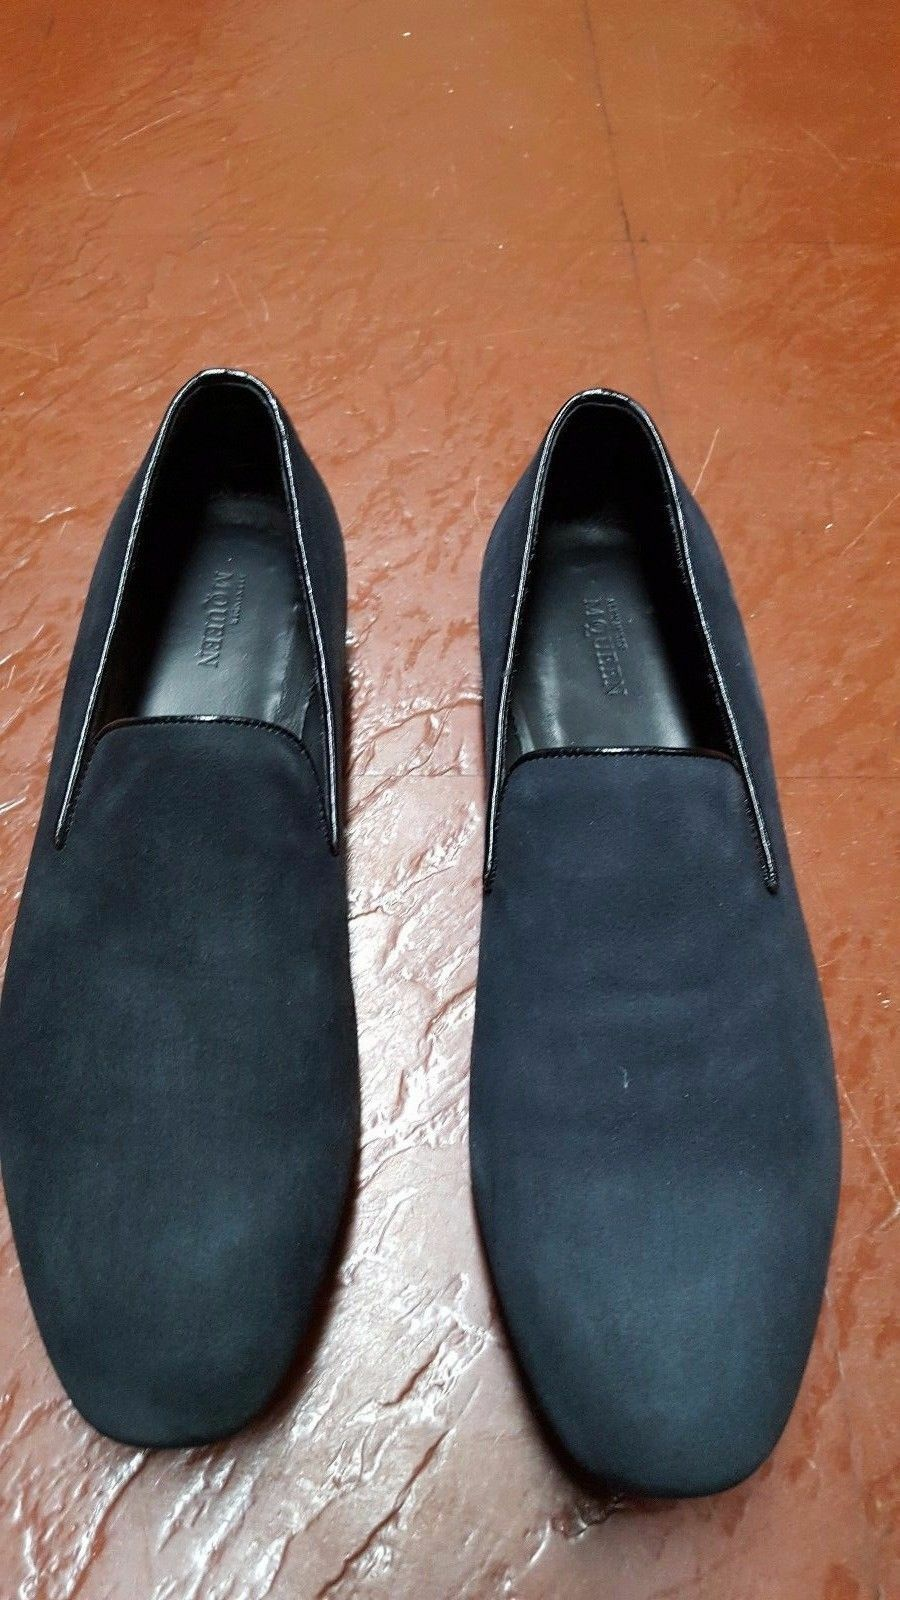 ALEXANDER MCQUEEN BY SLIP ON 10 SUEDE BY MCQUEEN OFFICINE CREATIVE cdb2fd